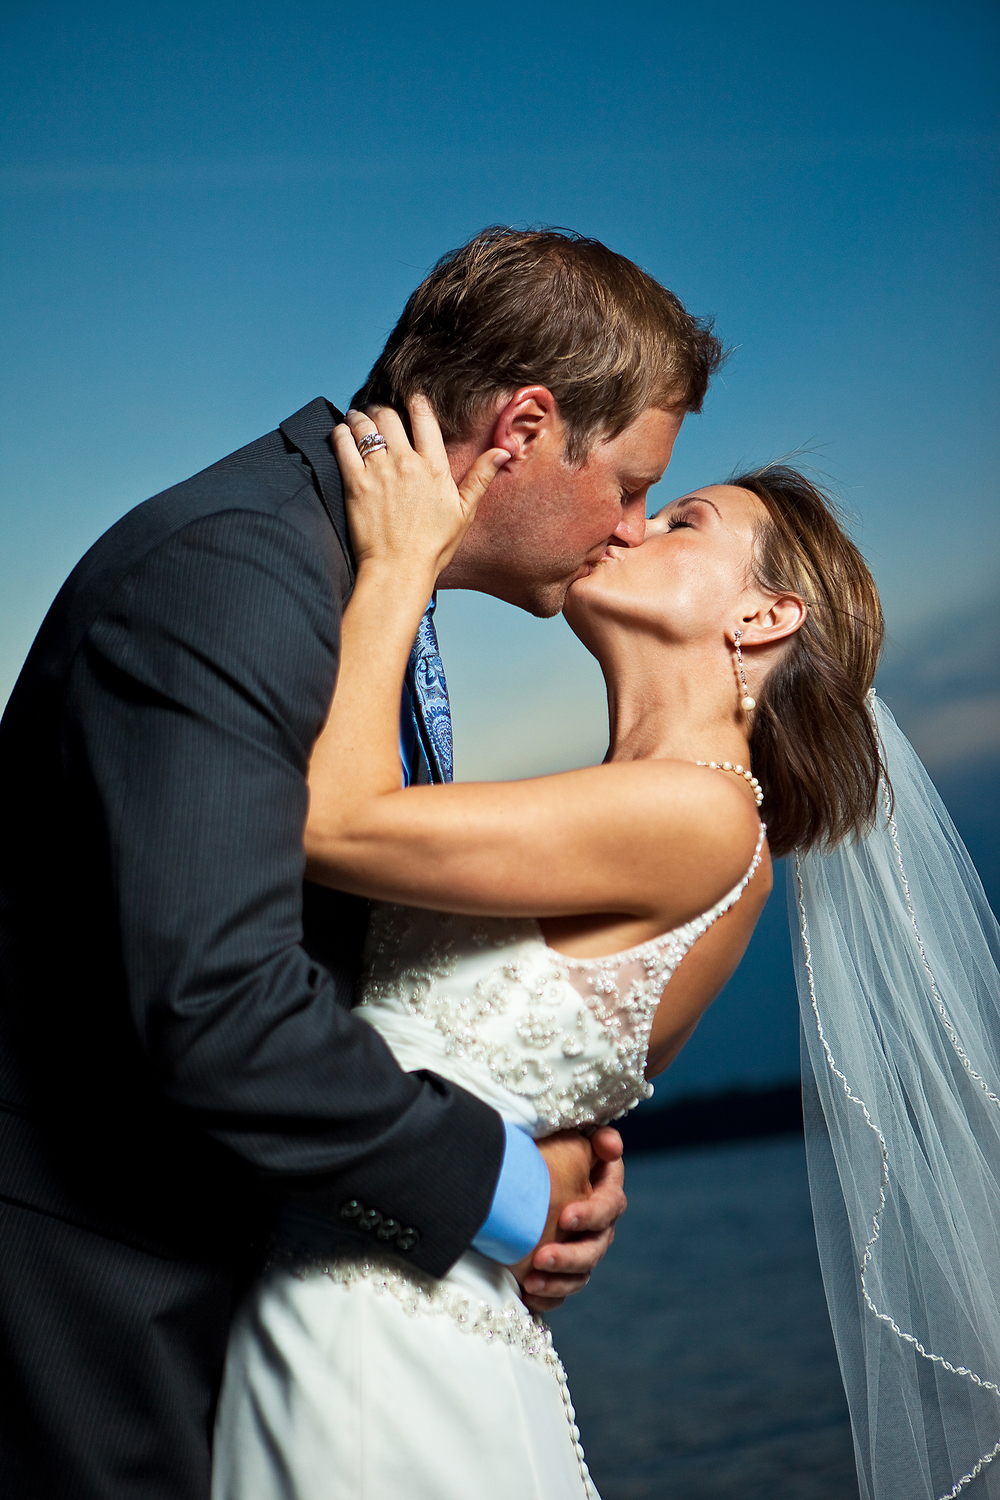 adam-szarmack-weddings-bride-groom-dock-kiss-dip.jpg